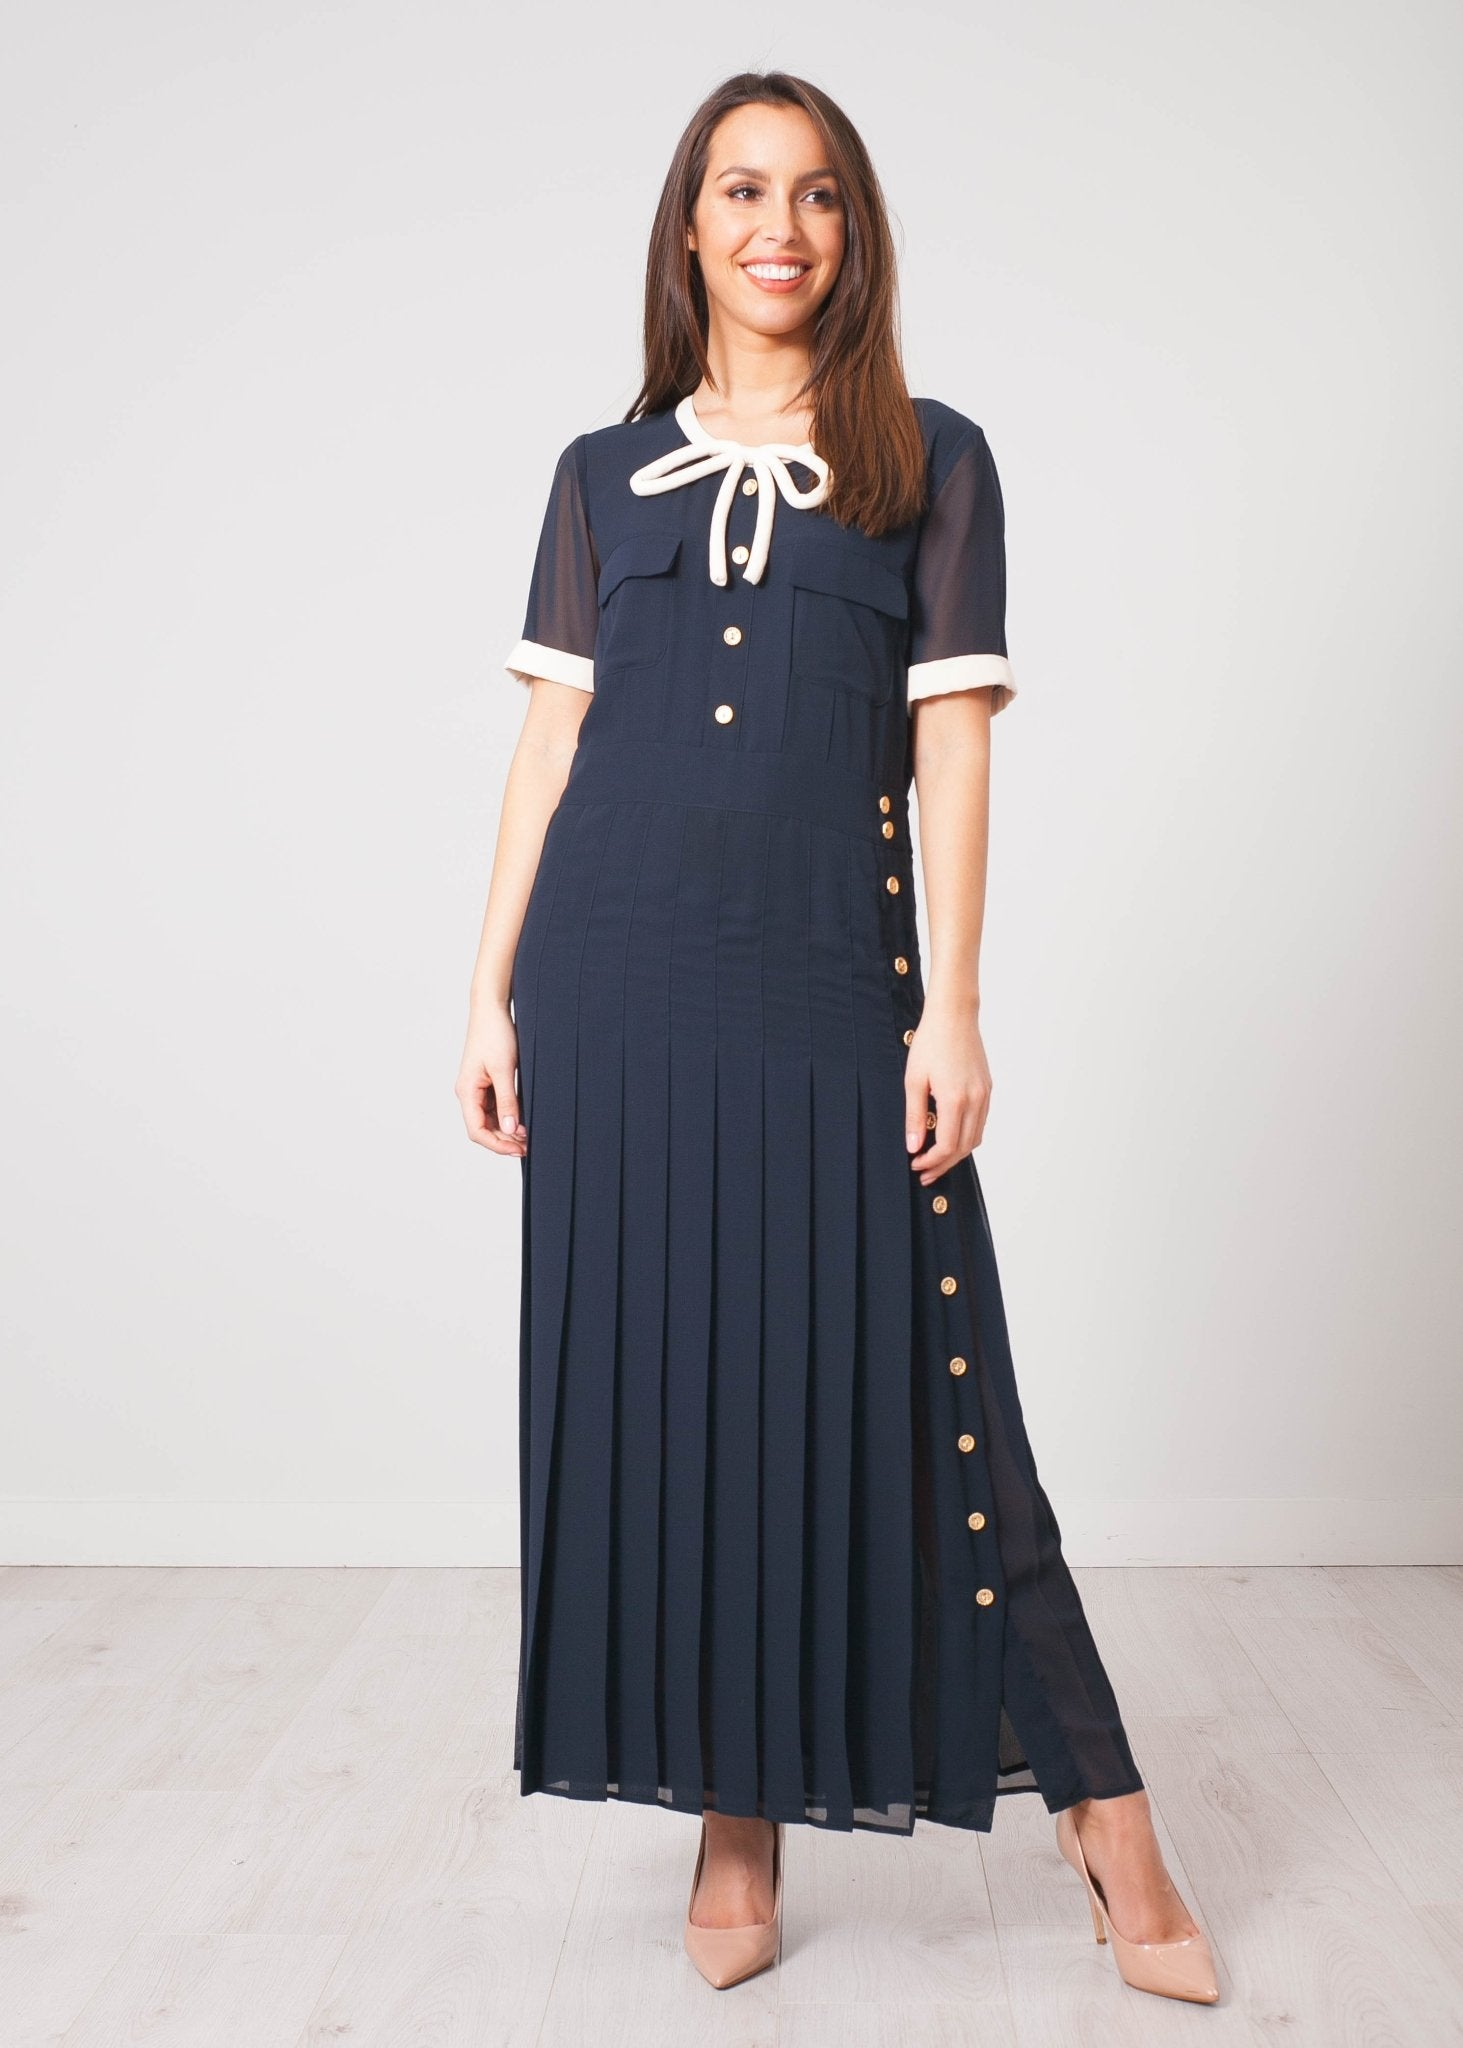 Aliyah Navy Dress - The Walk in Wardrobe